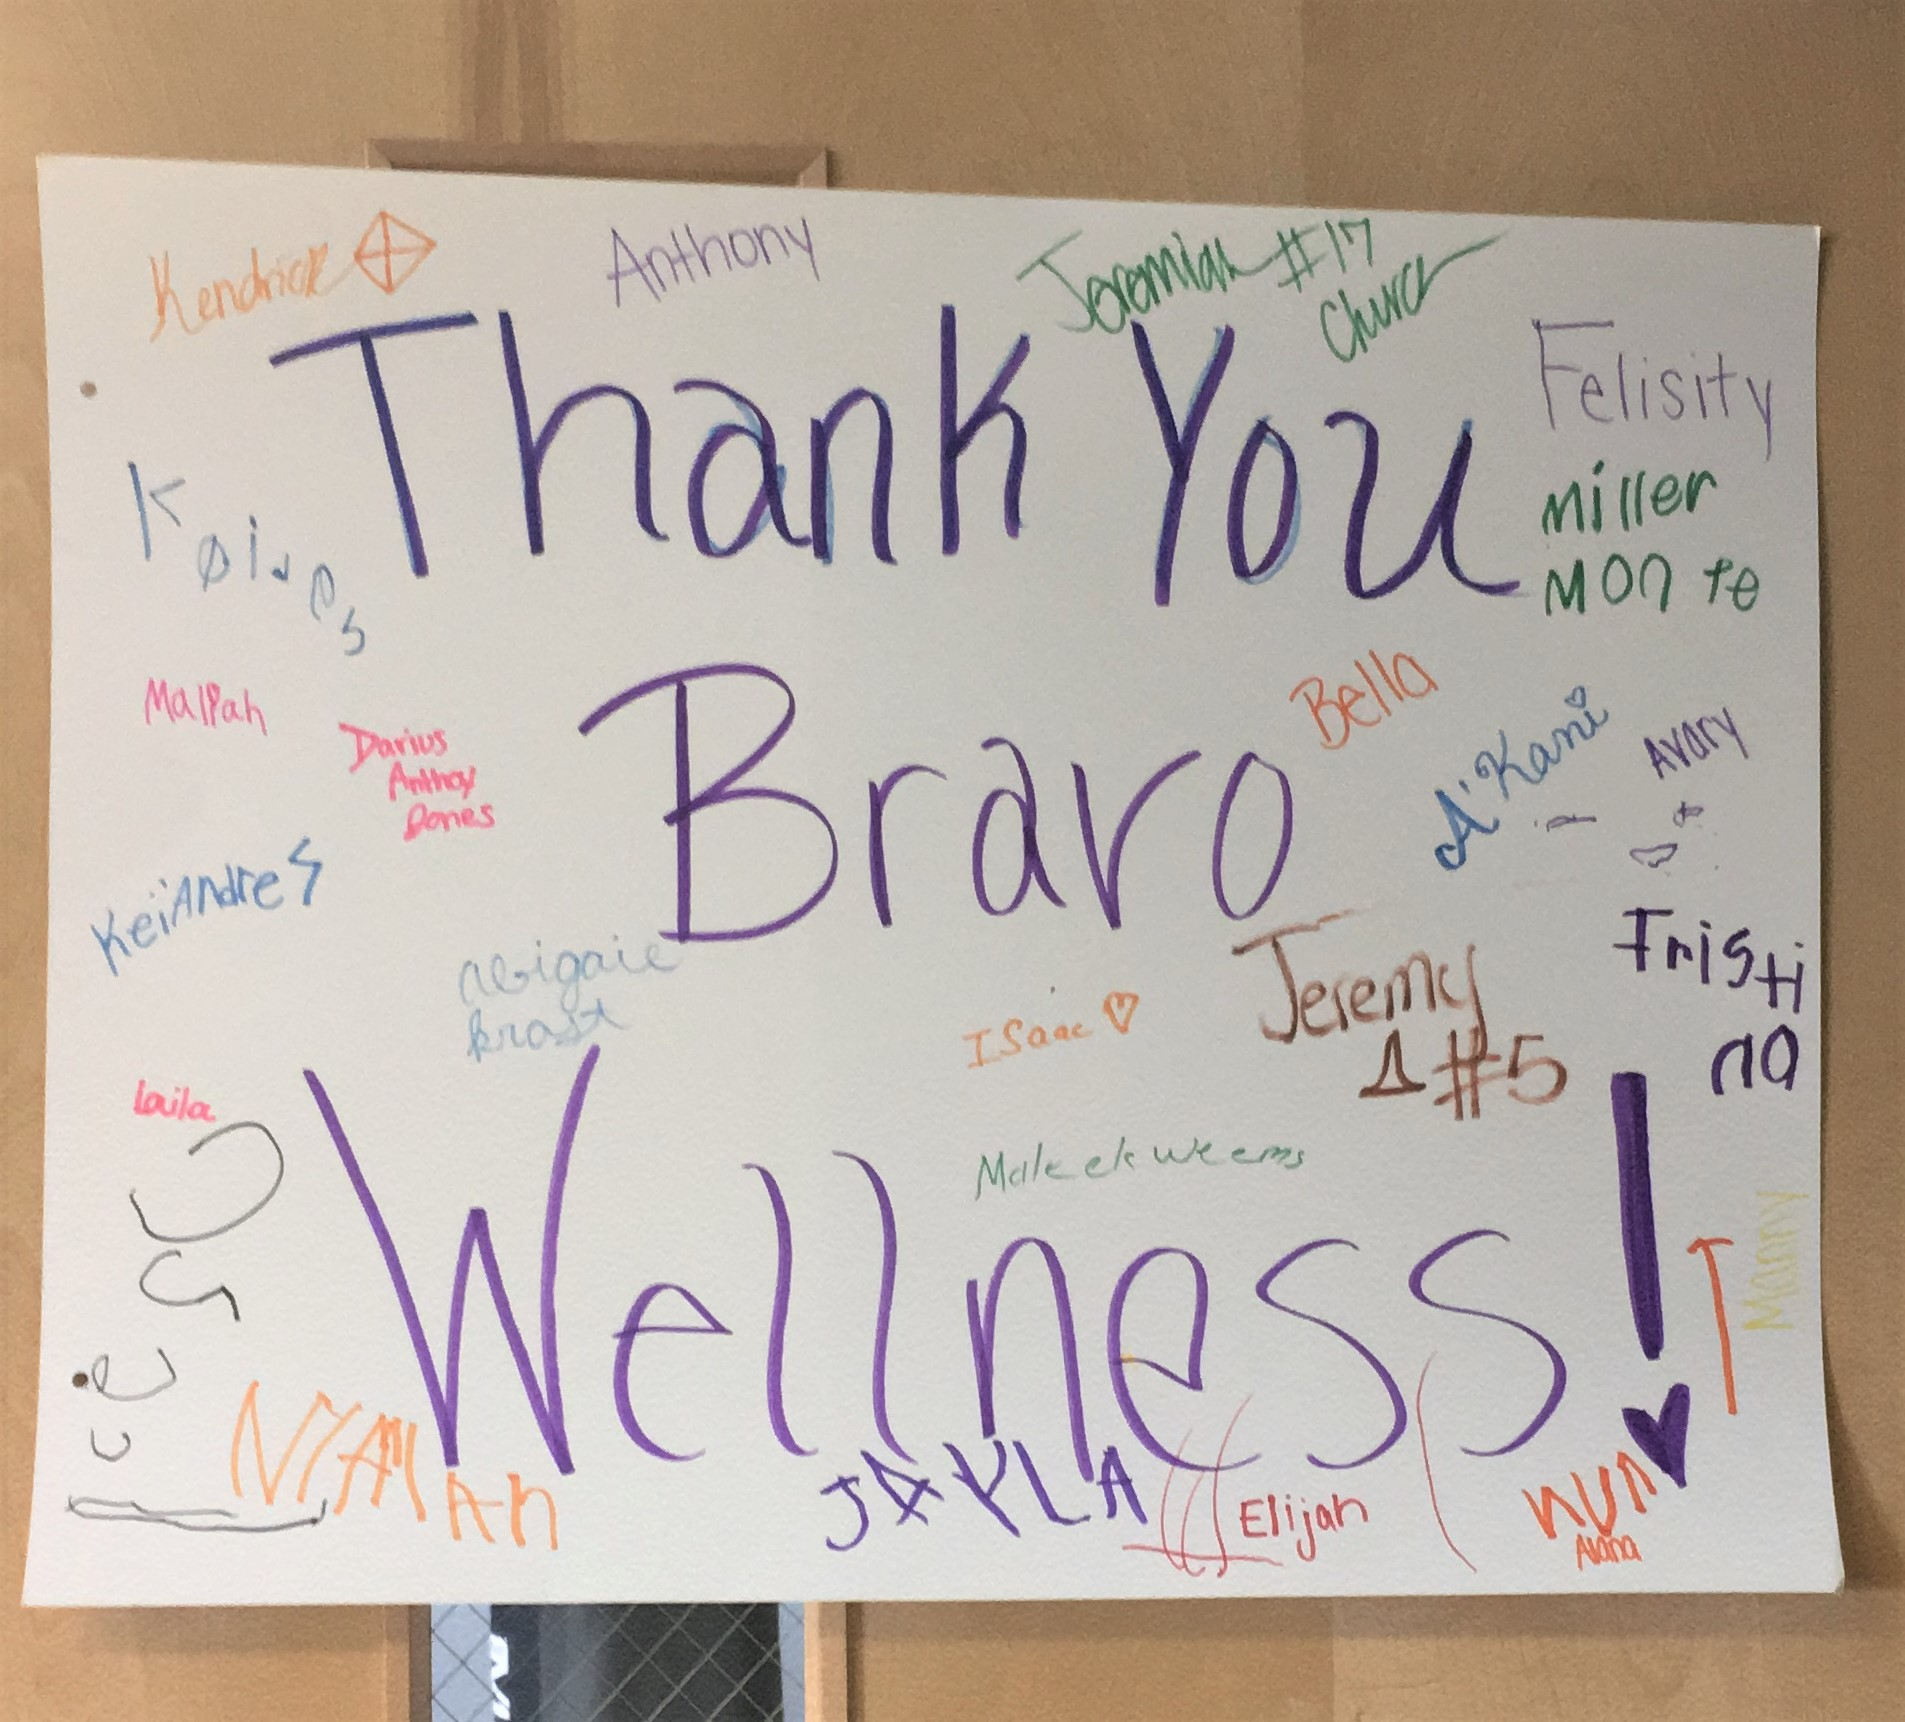 The kids who benefited from the matching donation, wrote a Thank You note to Bravo Wellness. Each of them signed it and hung it on the door.